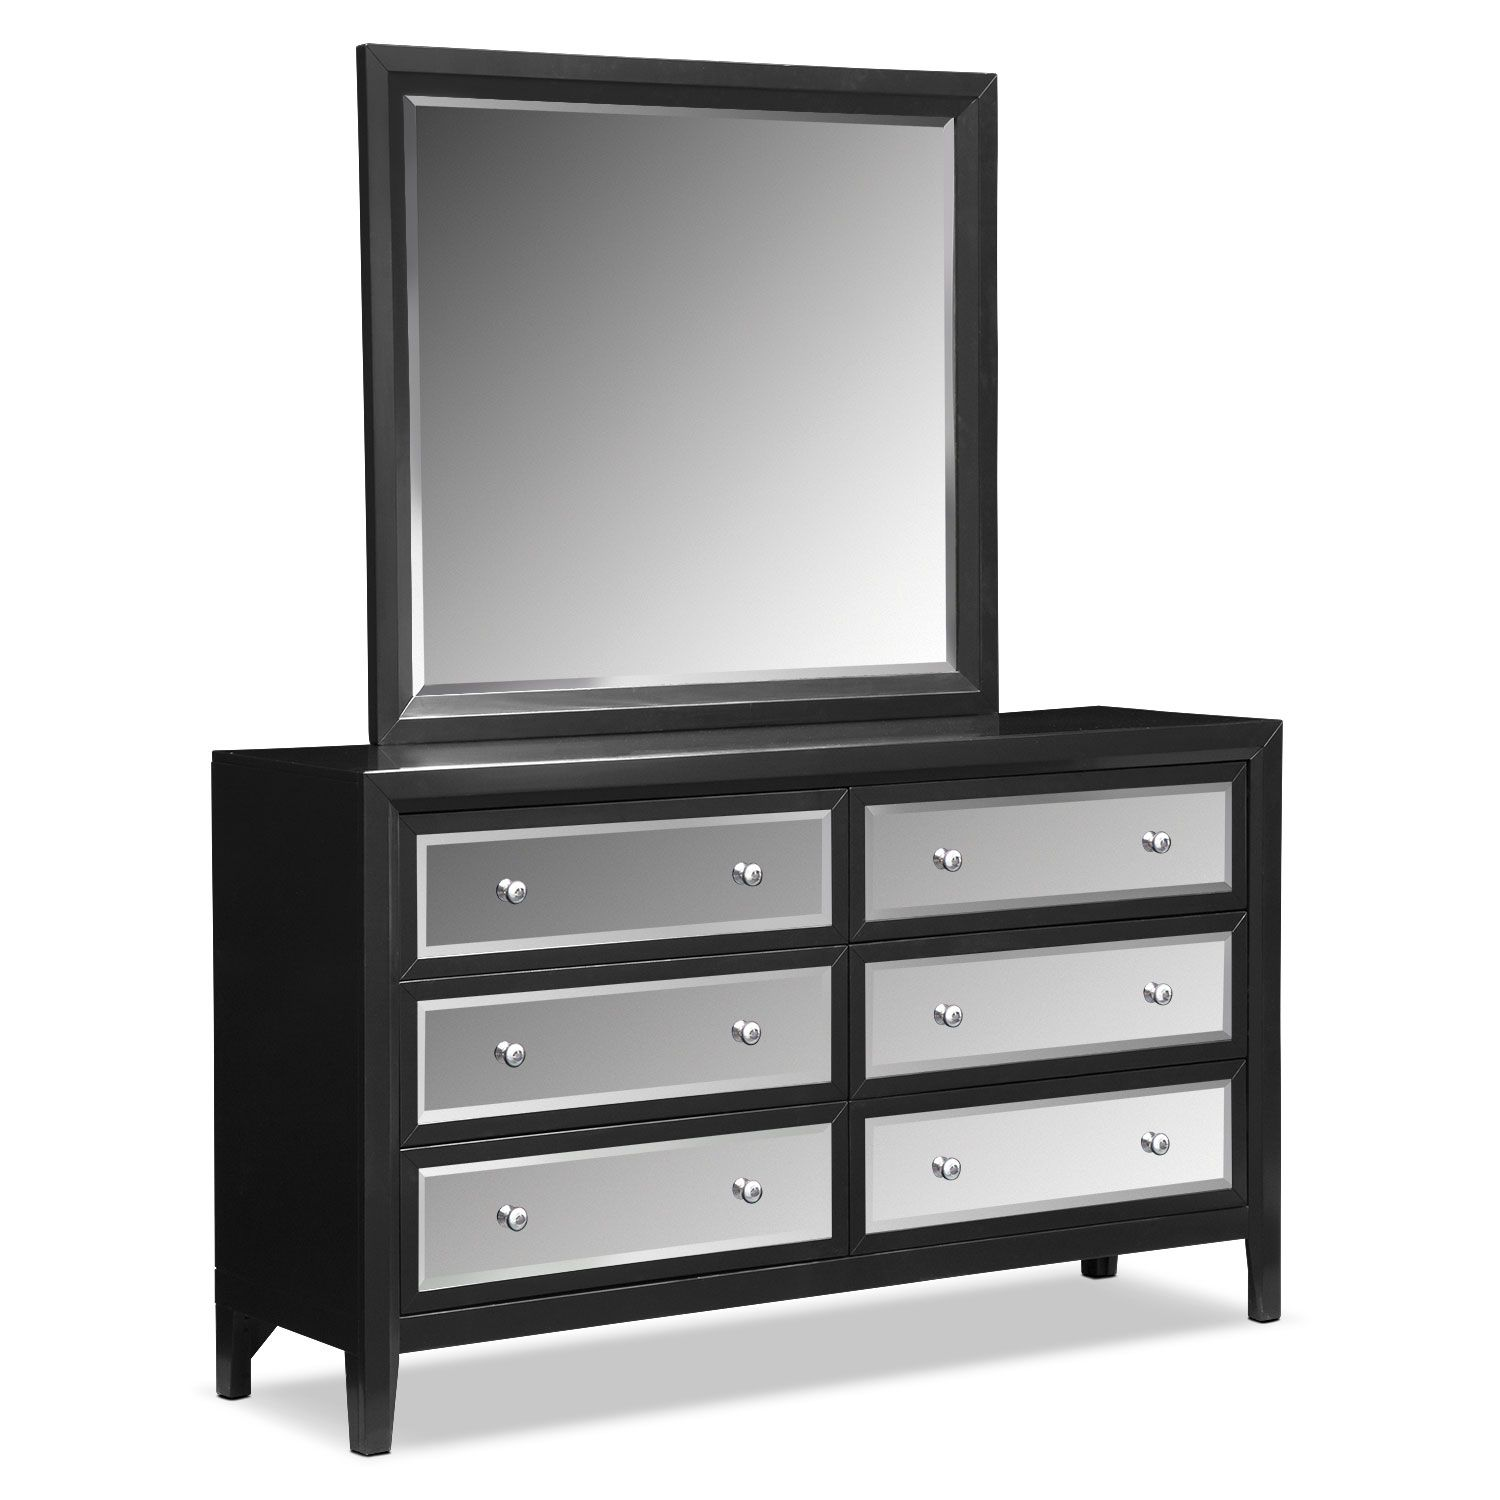 152 Reference Of Black Dresser Mirror In 2020 Mirrored Dresser Bedroom Dresser With Mirror Black Dressers